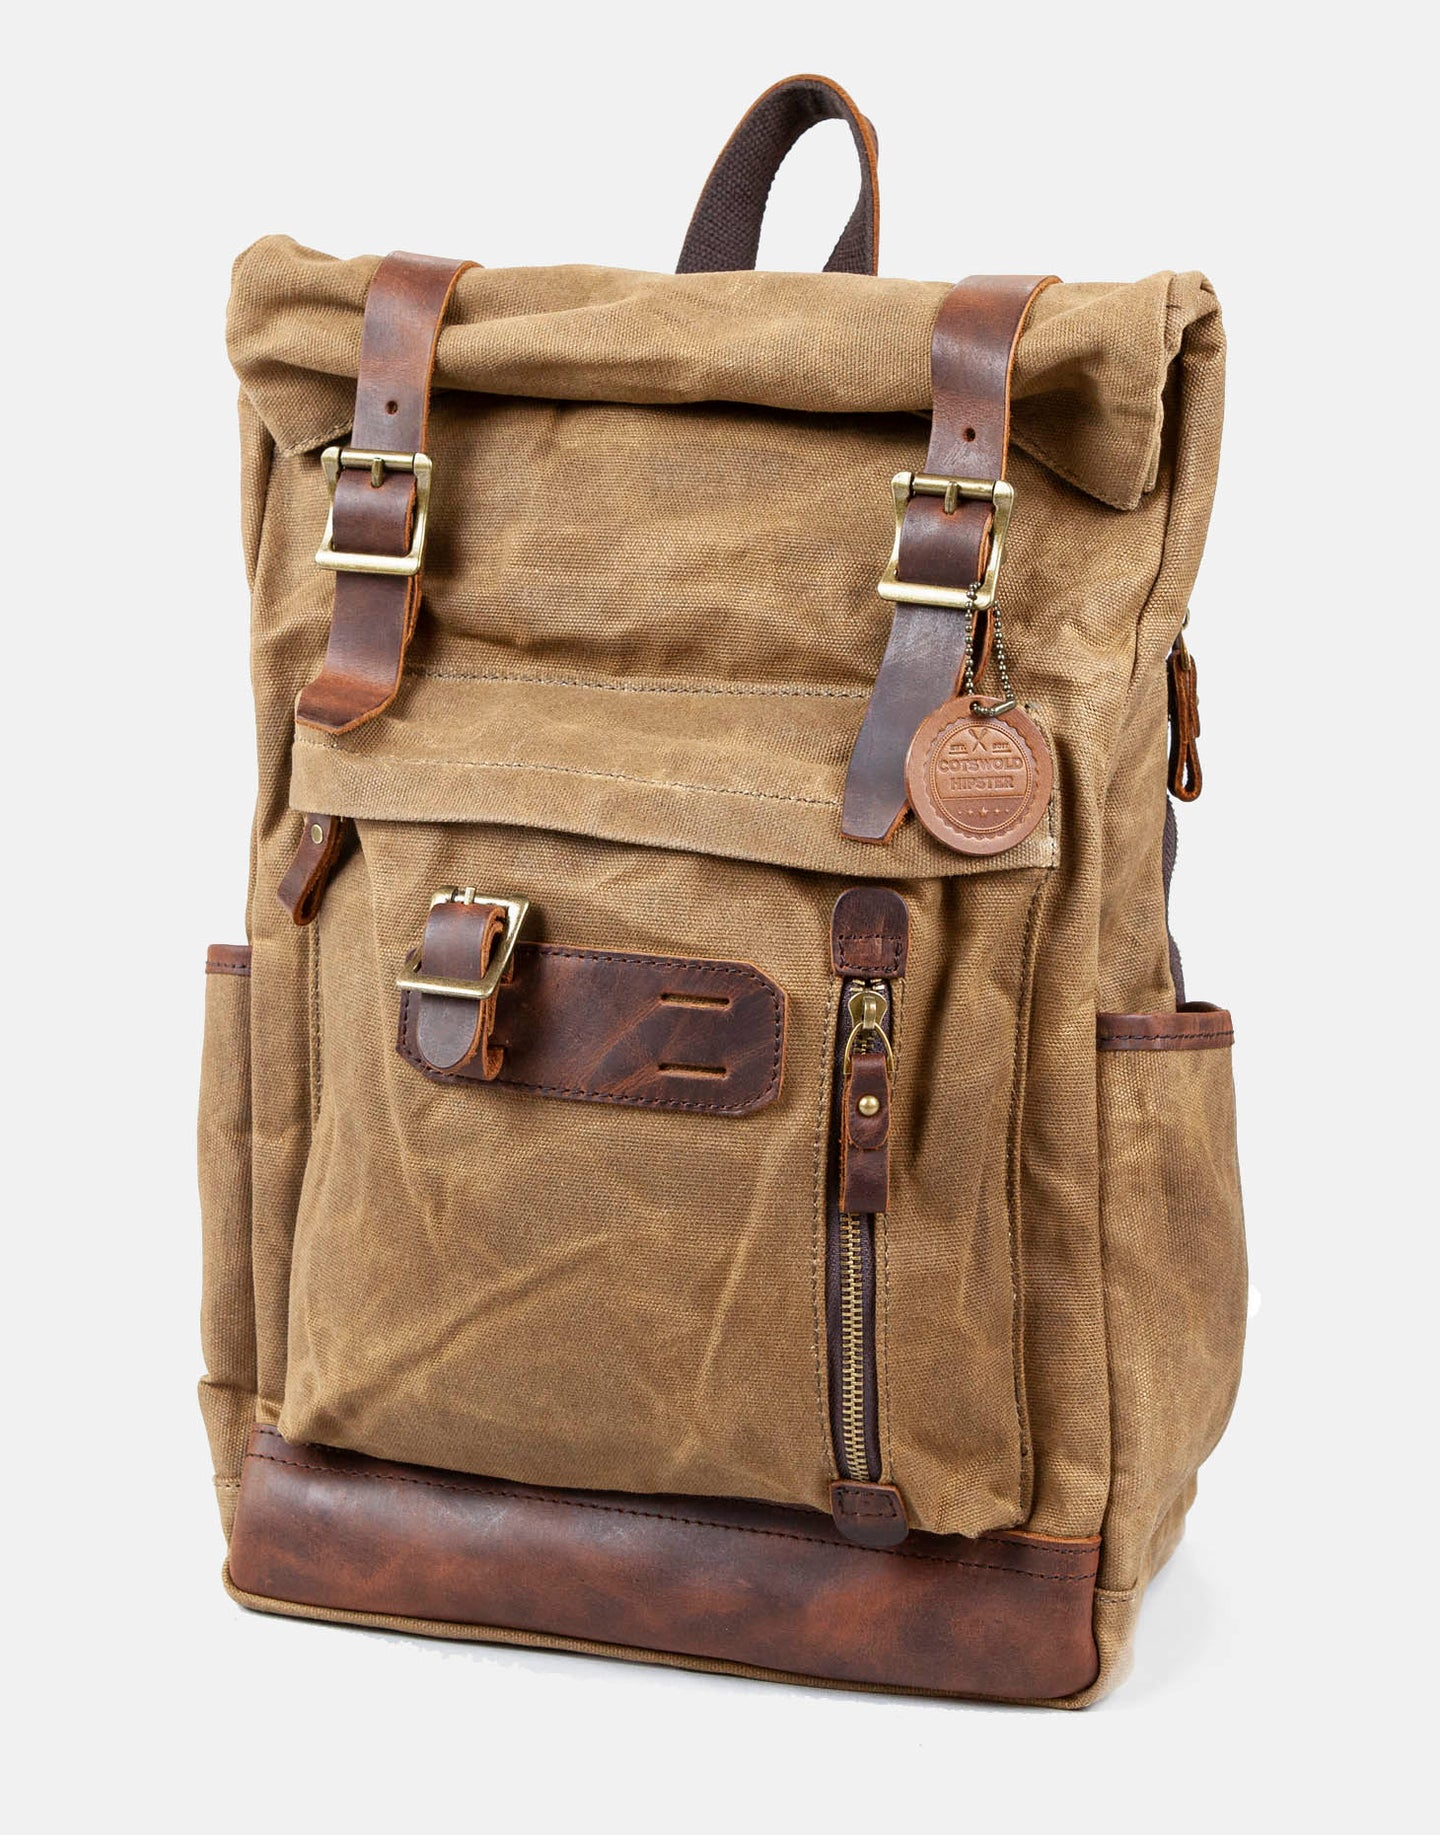 Waxed canvas and leather backpack (The Whichford Backpack)